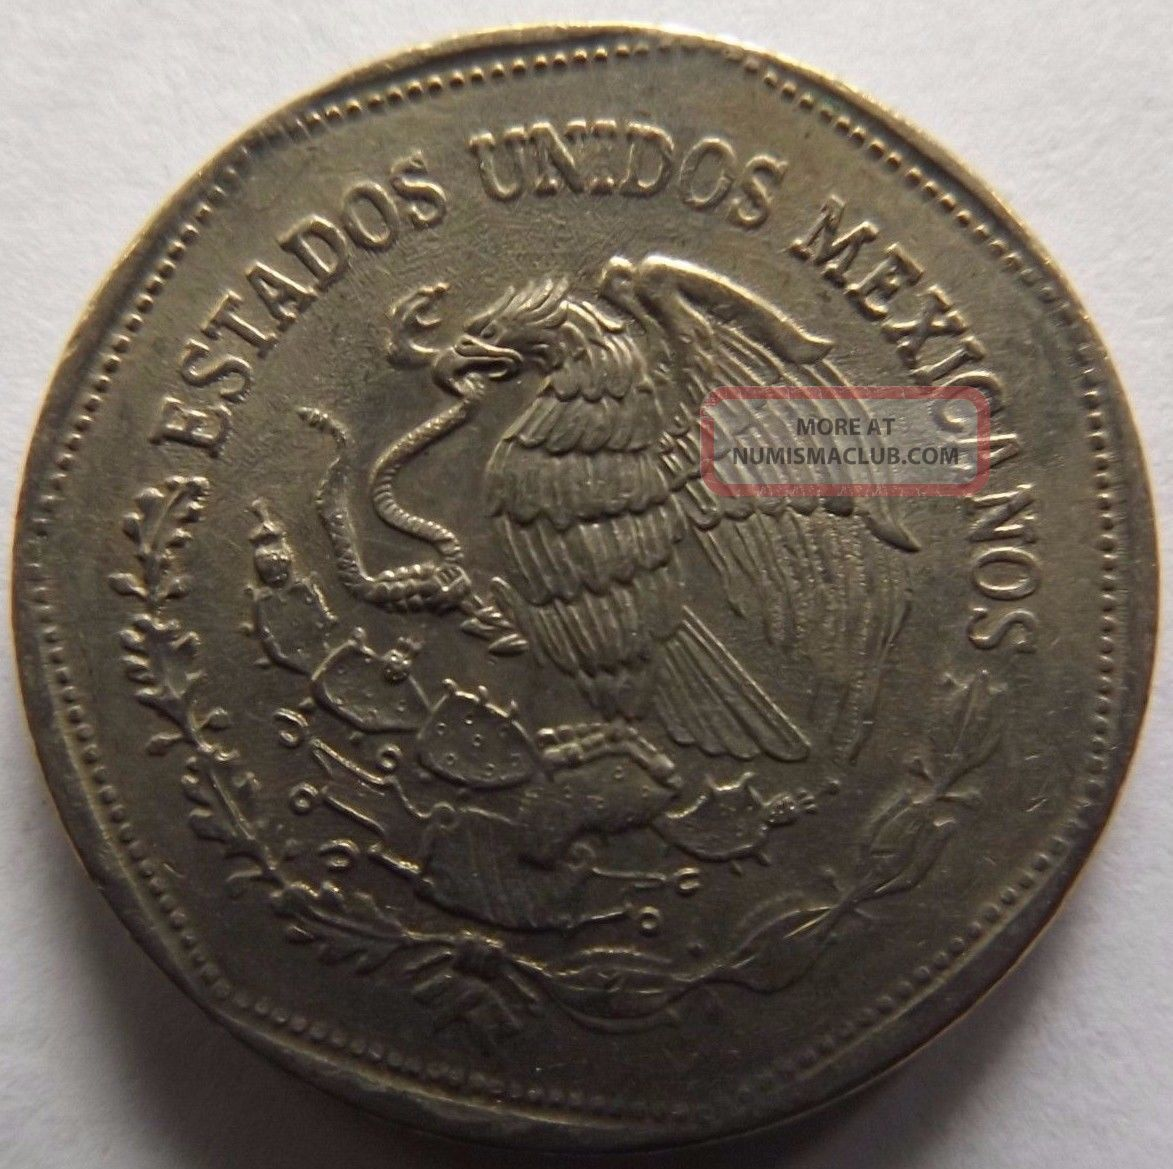 1980 Mexico 5 Pesos Native Sculpture On Coin